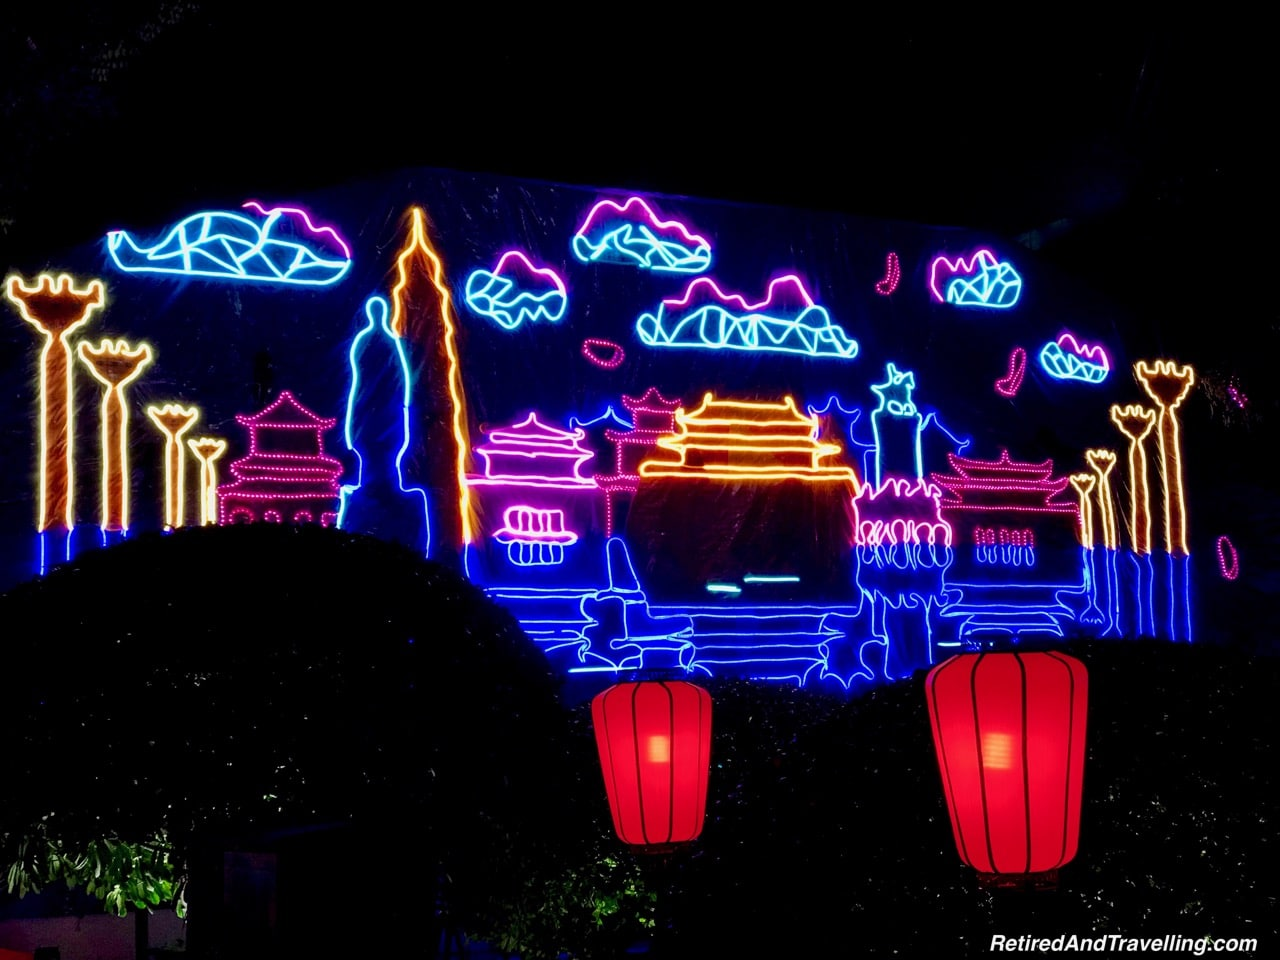 Xian S. Yanta Street Night Light Show Neon - Great Things To Discover In Xian China.jpg